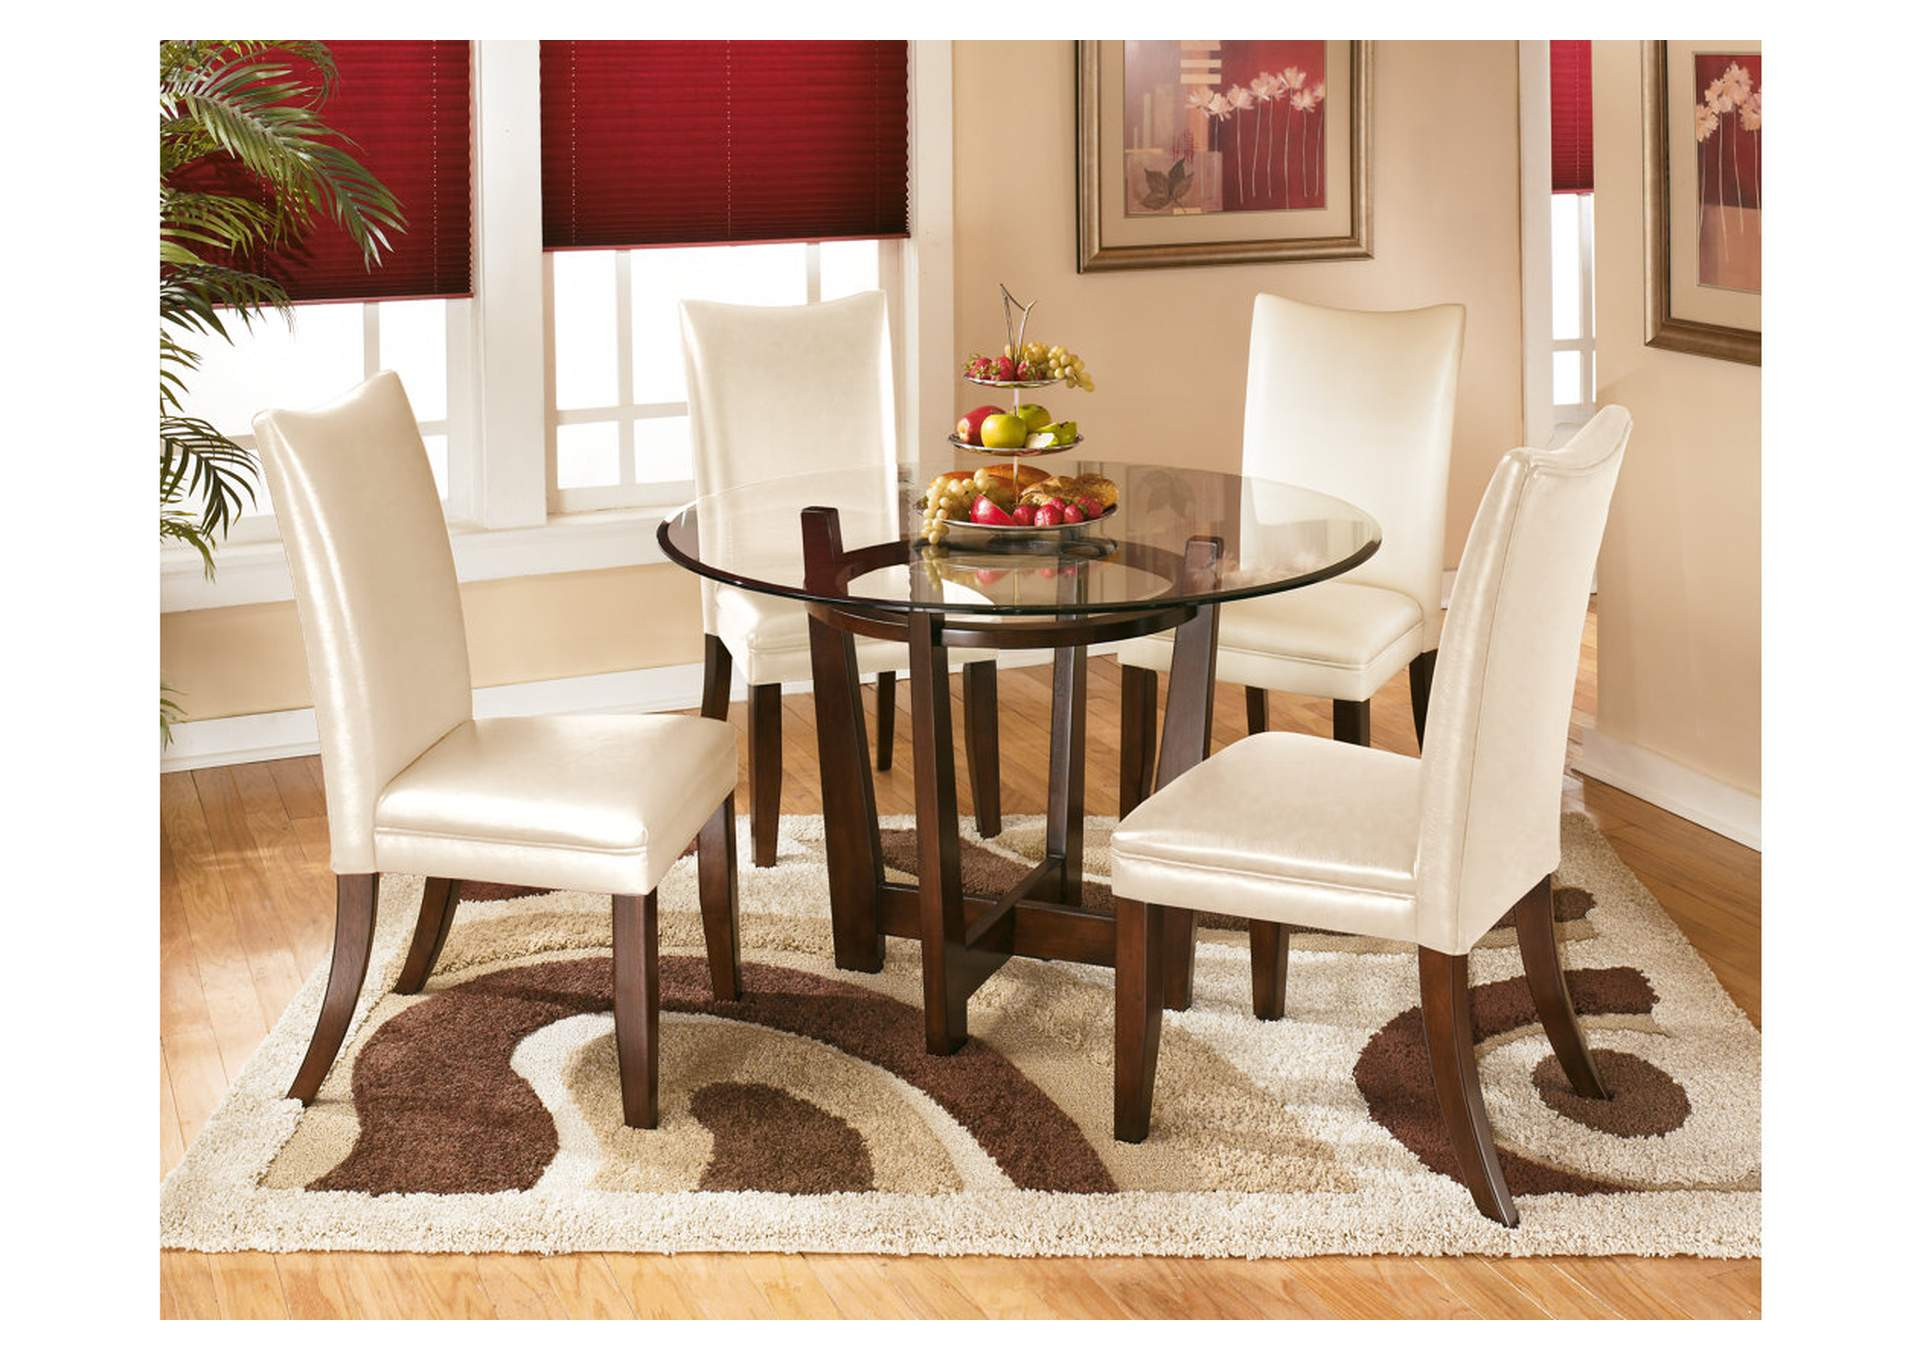 Vip Furniture Outlet Upper Darby Pa Charell Round Dining Table W 4 Ivory Side Chairs